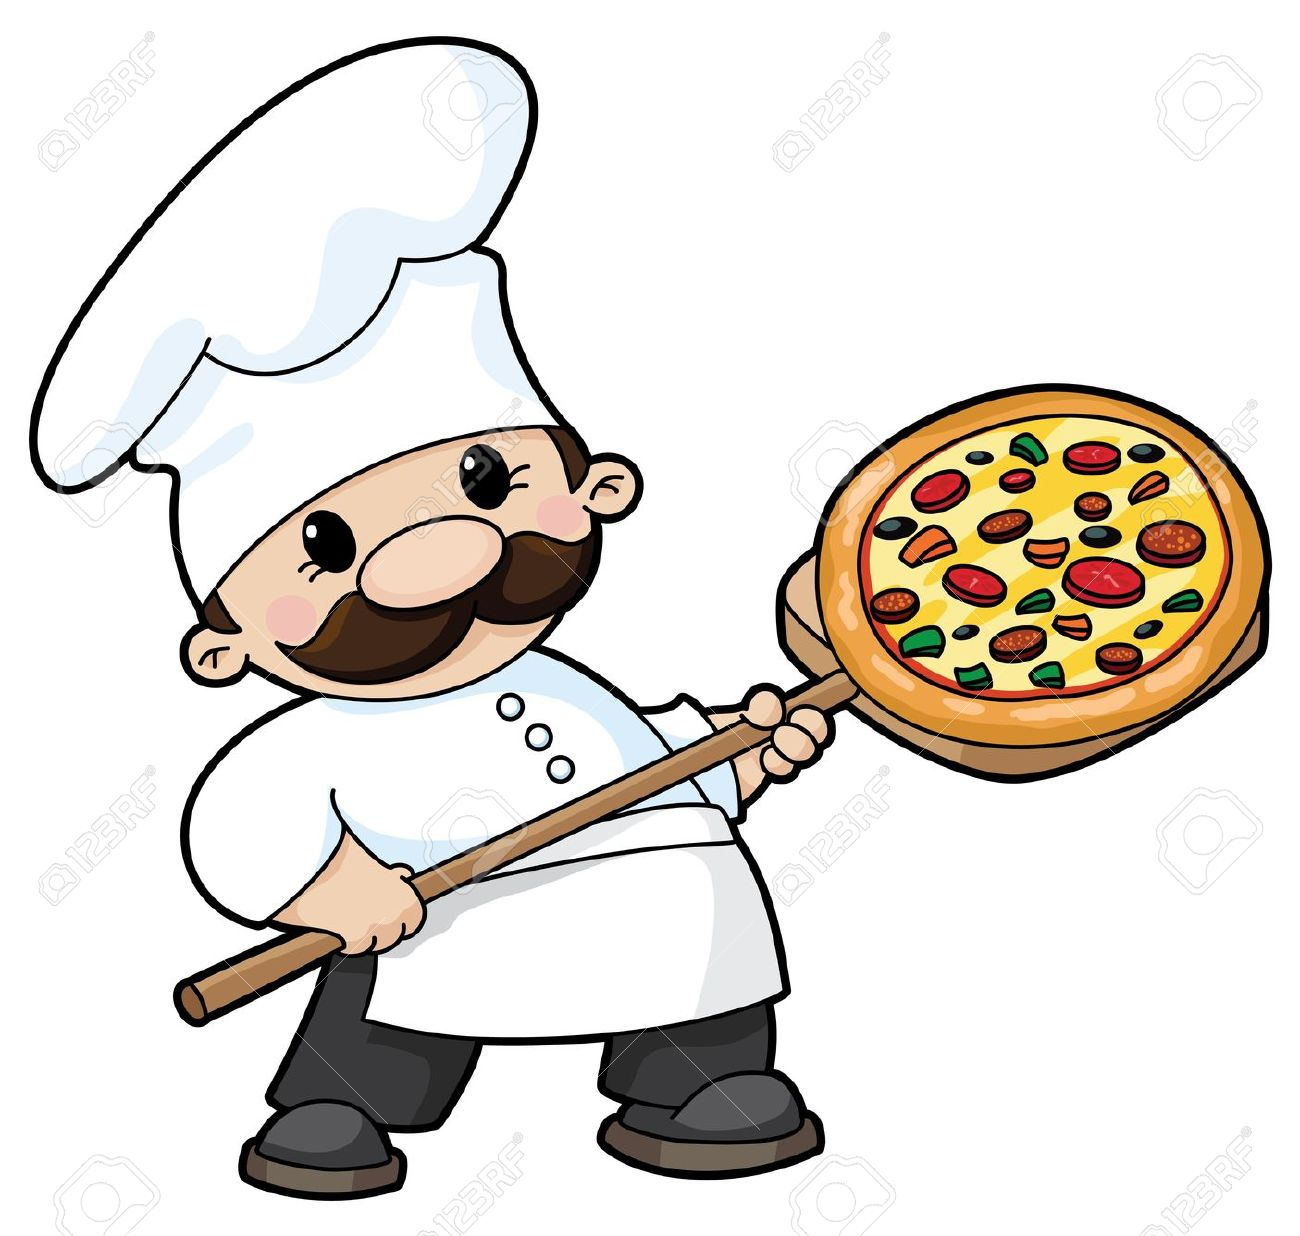 Pizza chef clipart vector royalty free stock Clipart pizza chef - ClipartFest vector royalty free stock